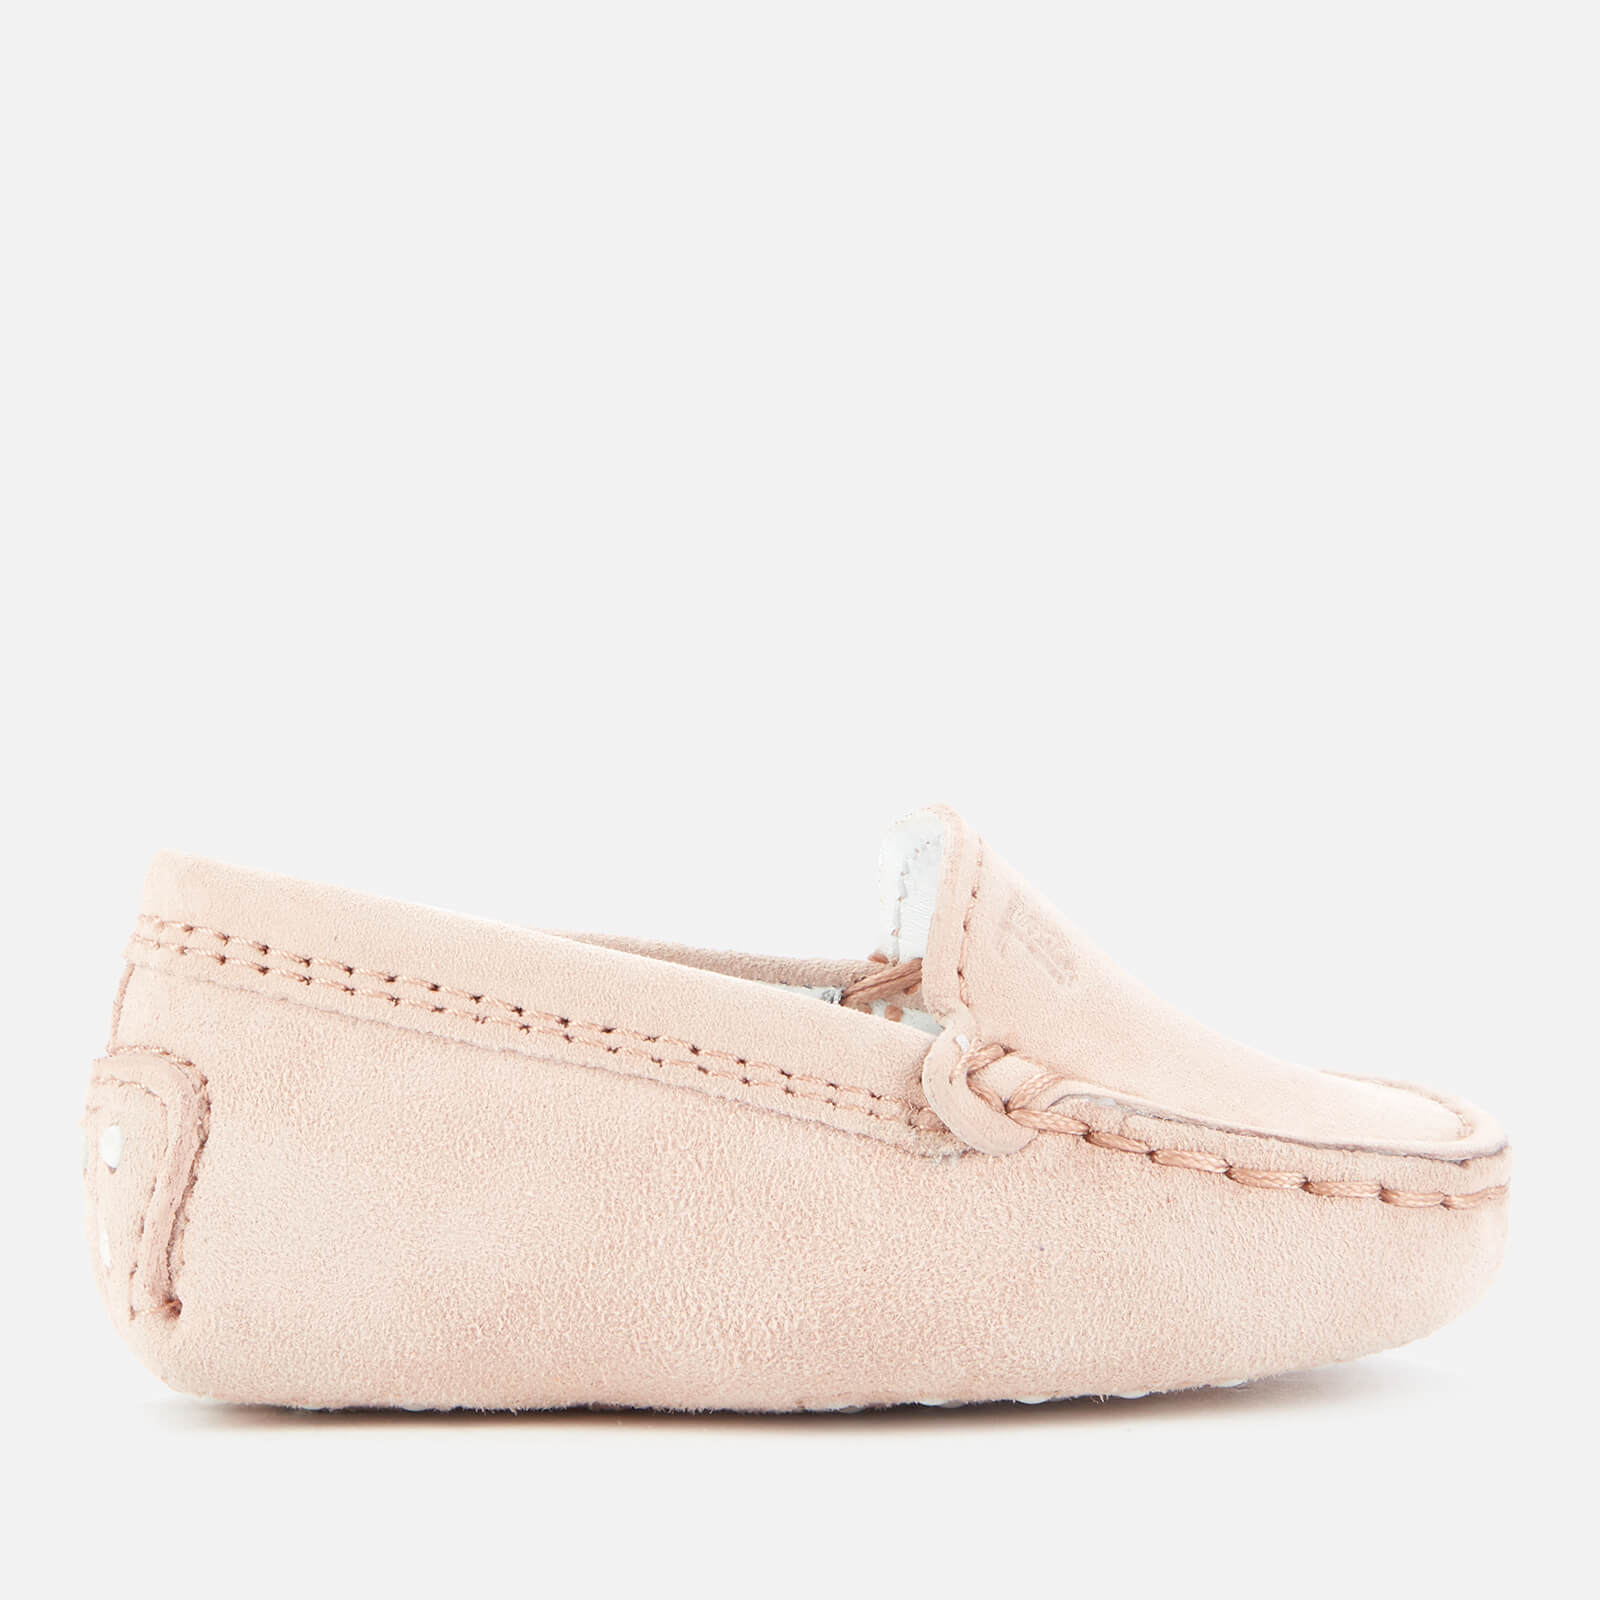 Tod's Babies' Suede Loafers - Pink - UK 0 Infant